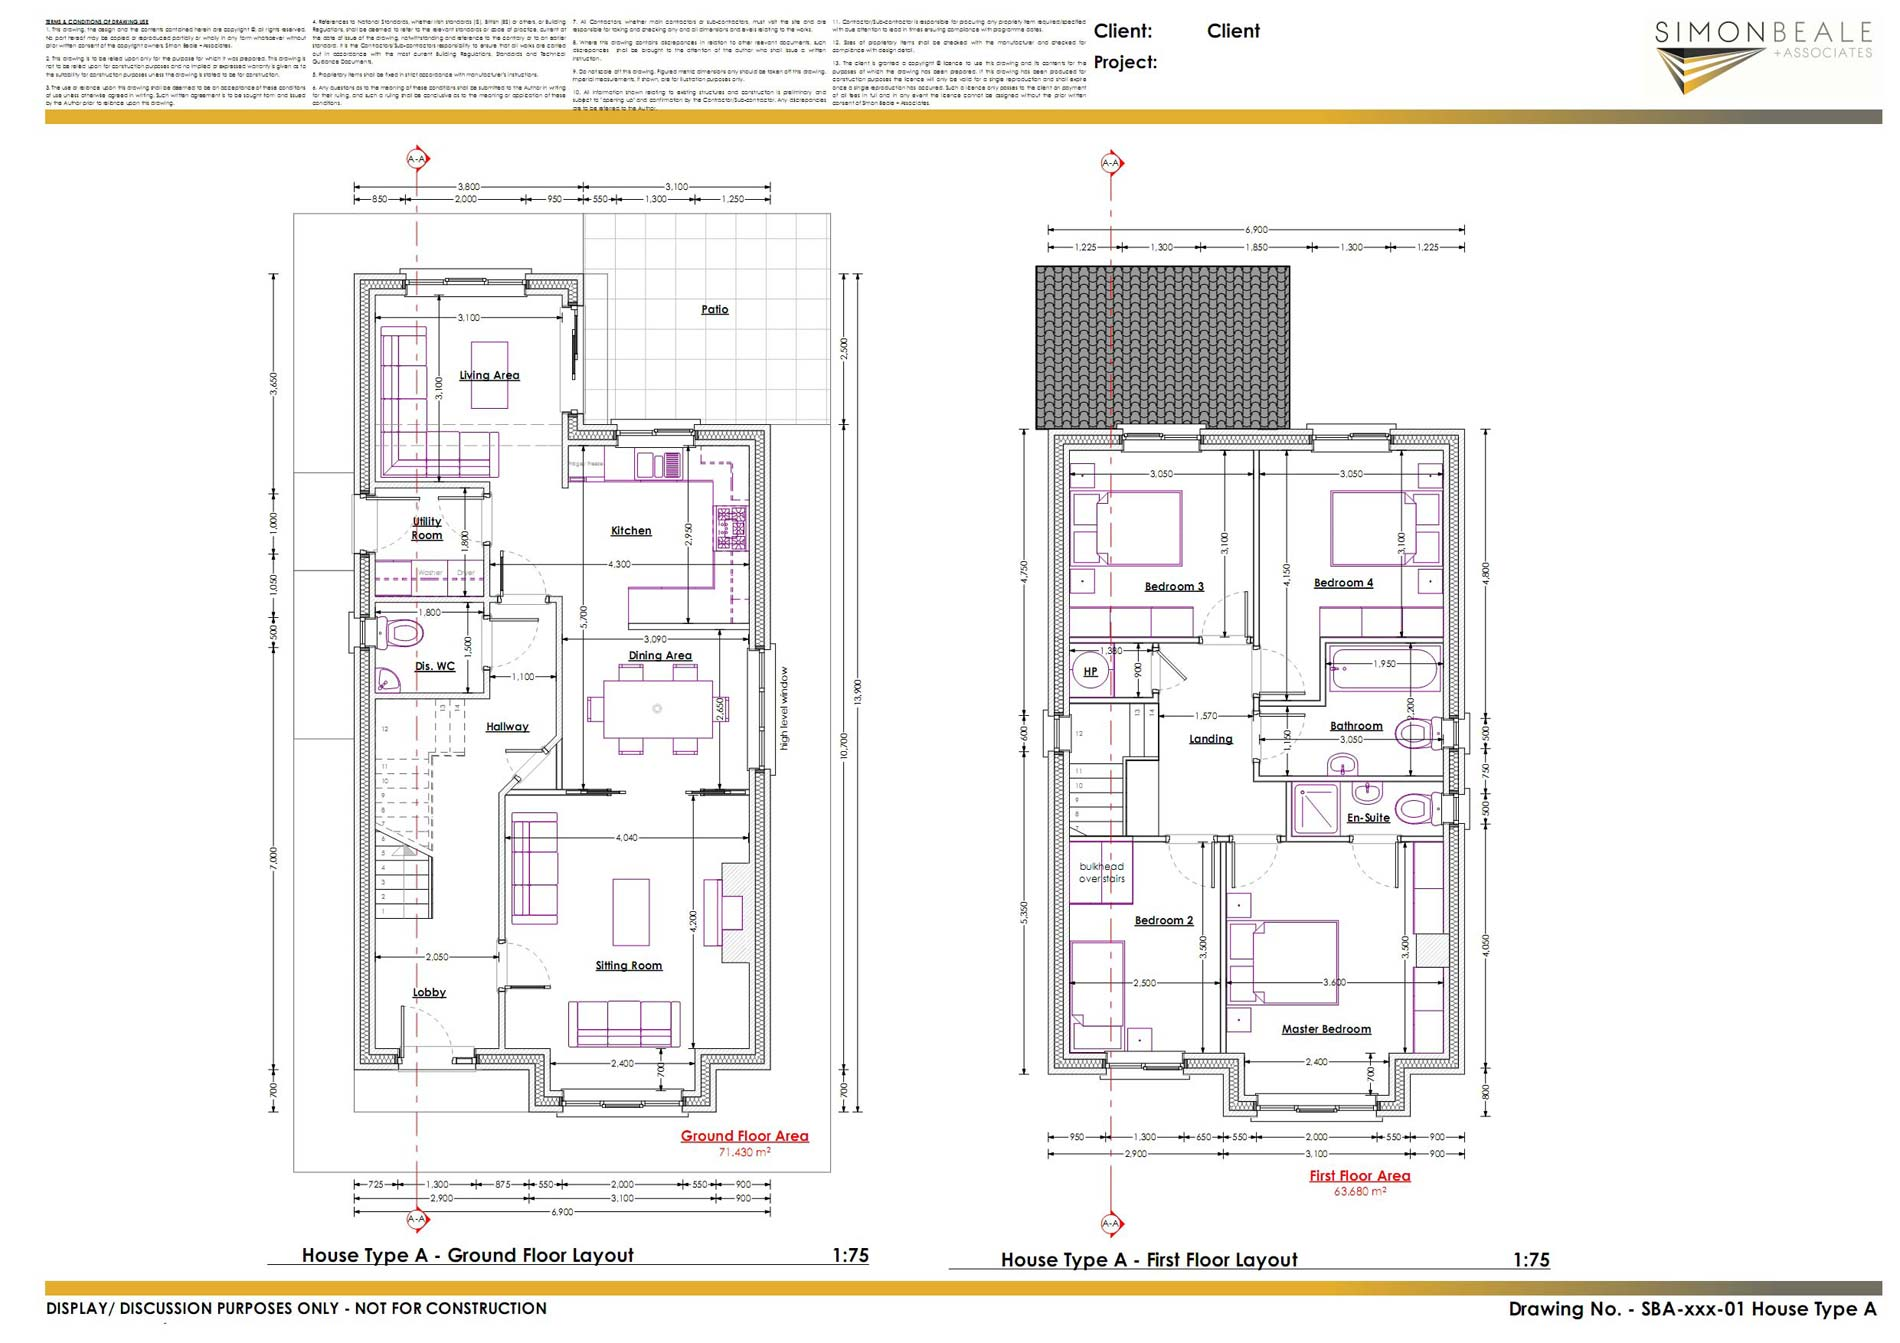 01 House Type A Floor Plans_pagenumber.001